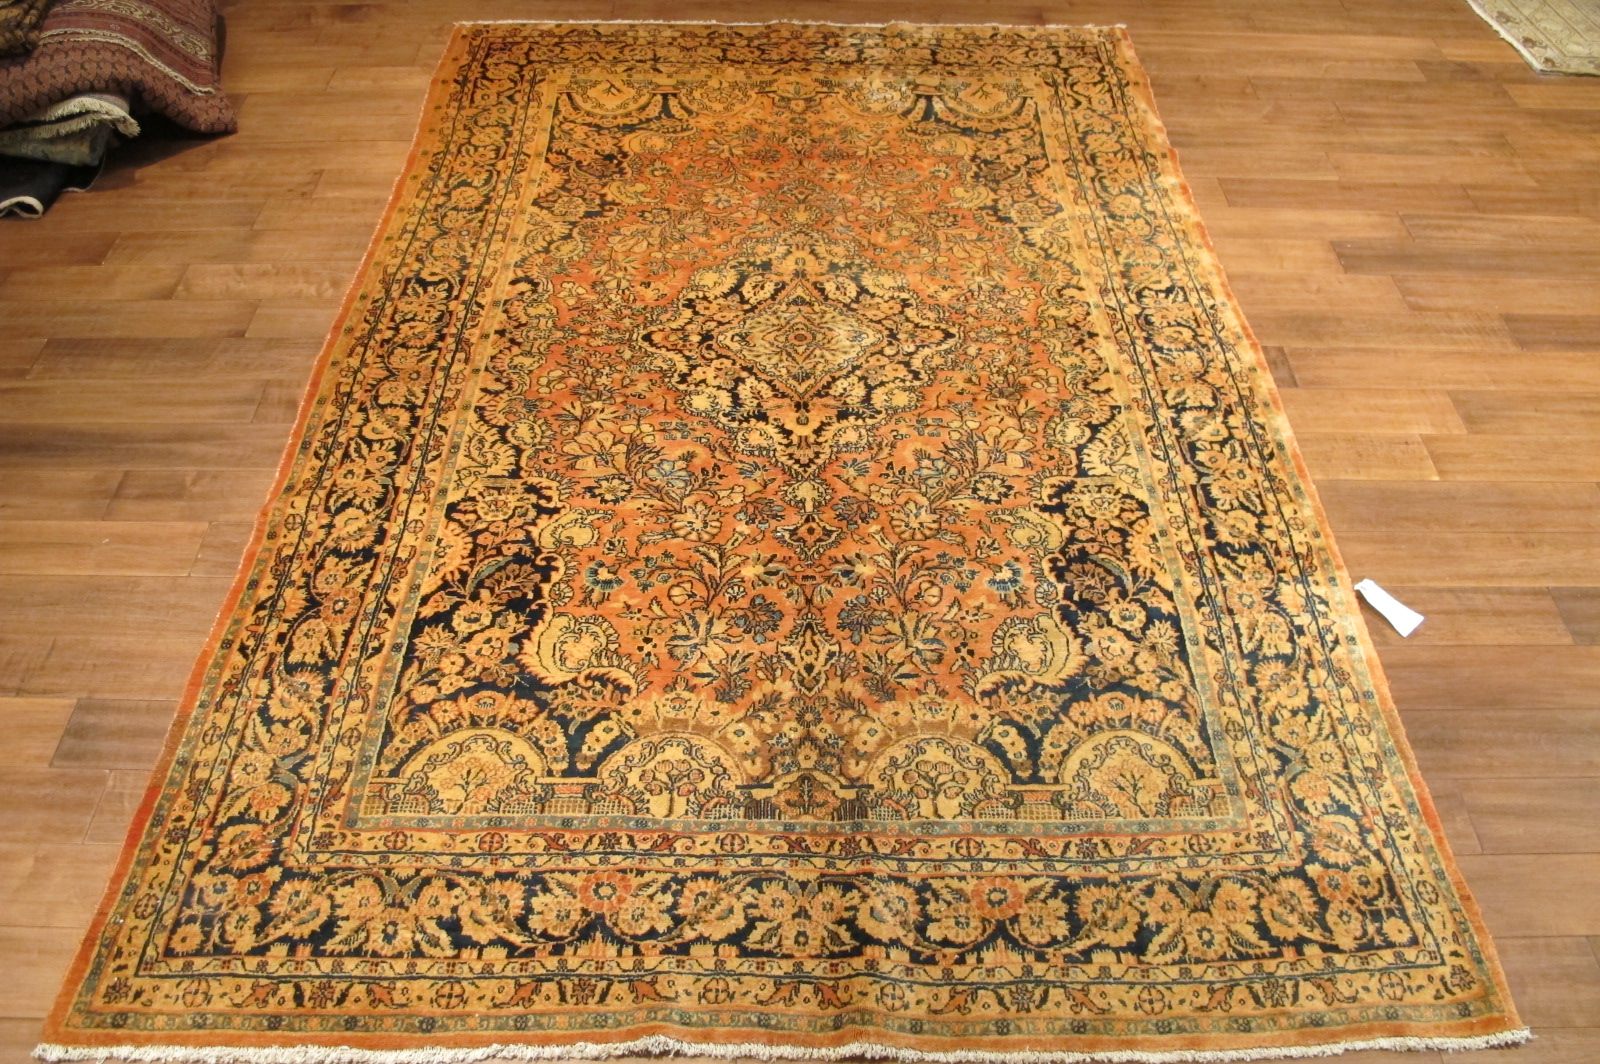 42 semi antique pesian sarouk rug 6,2 x 9,6